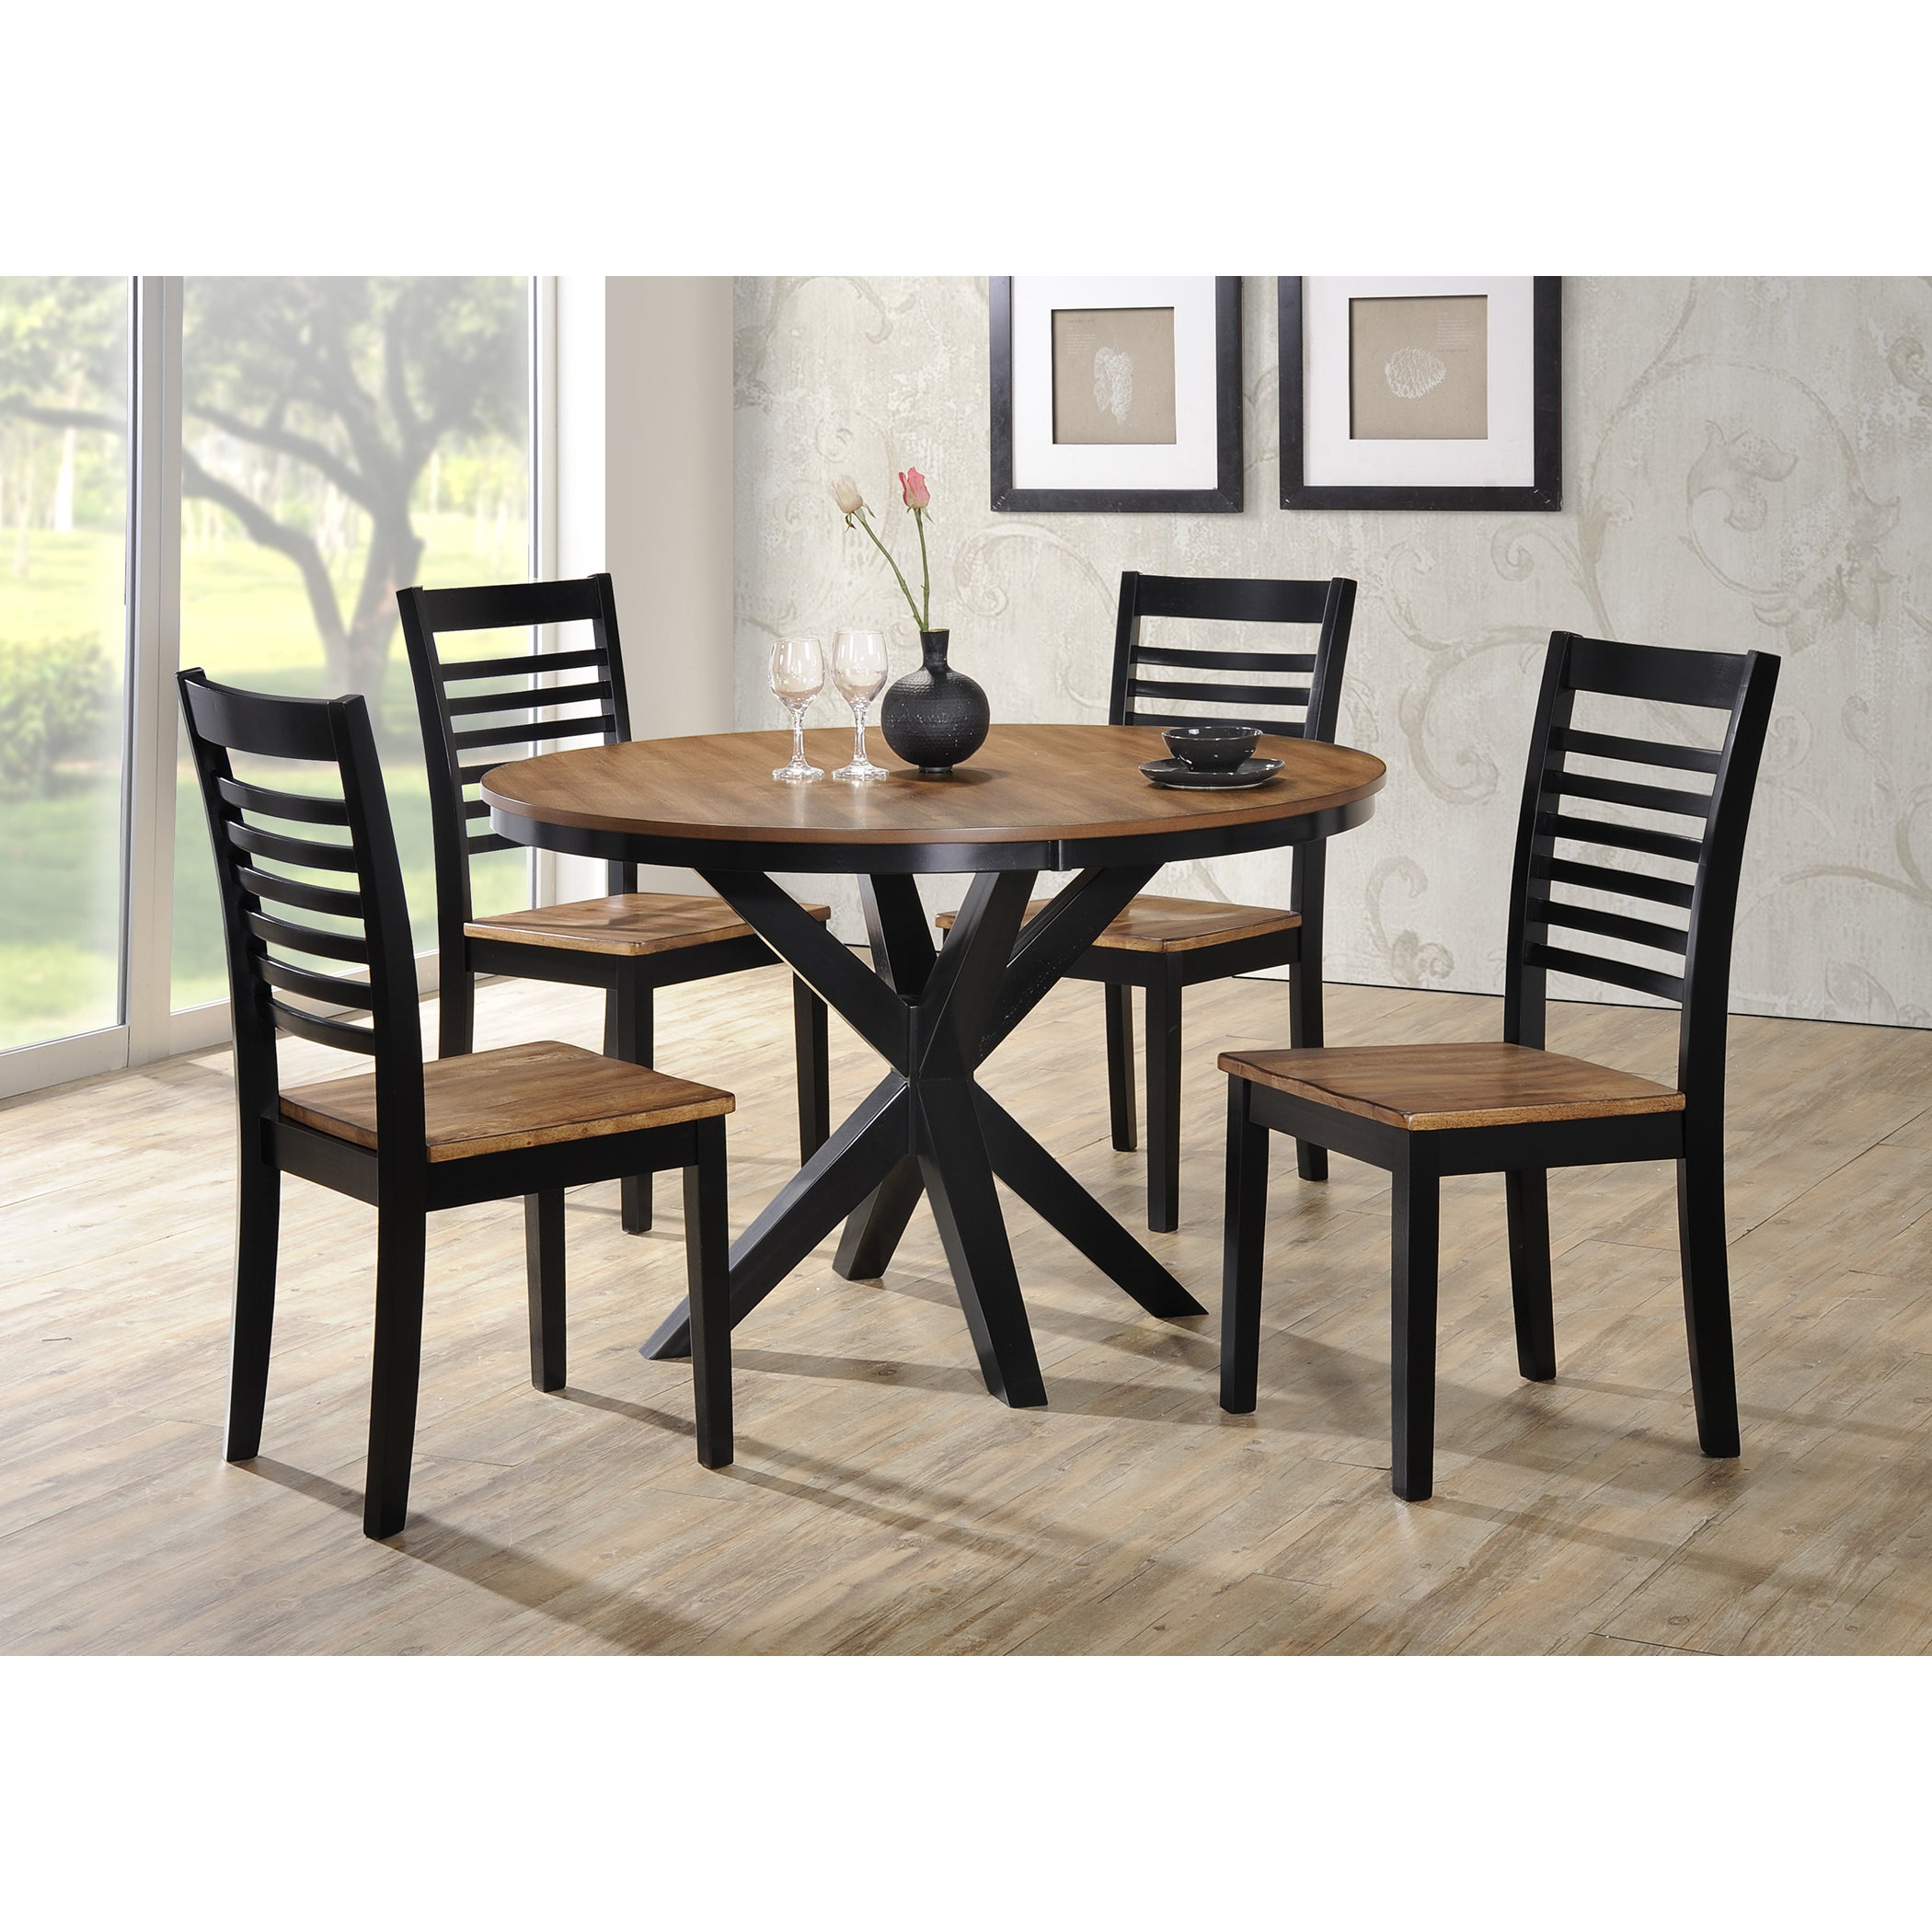 Shop Phoenix 48 Inch Dining Table   Free Shipping Today   Overstock.com    11606017